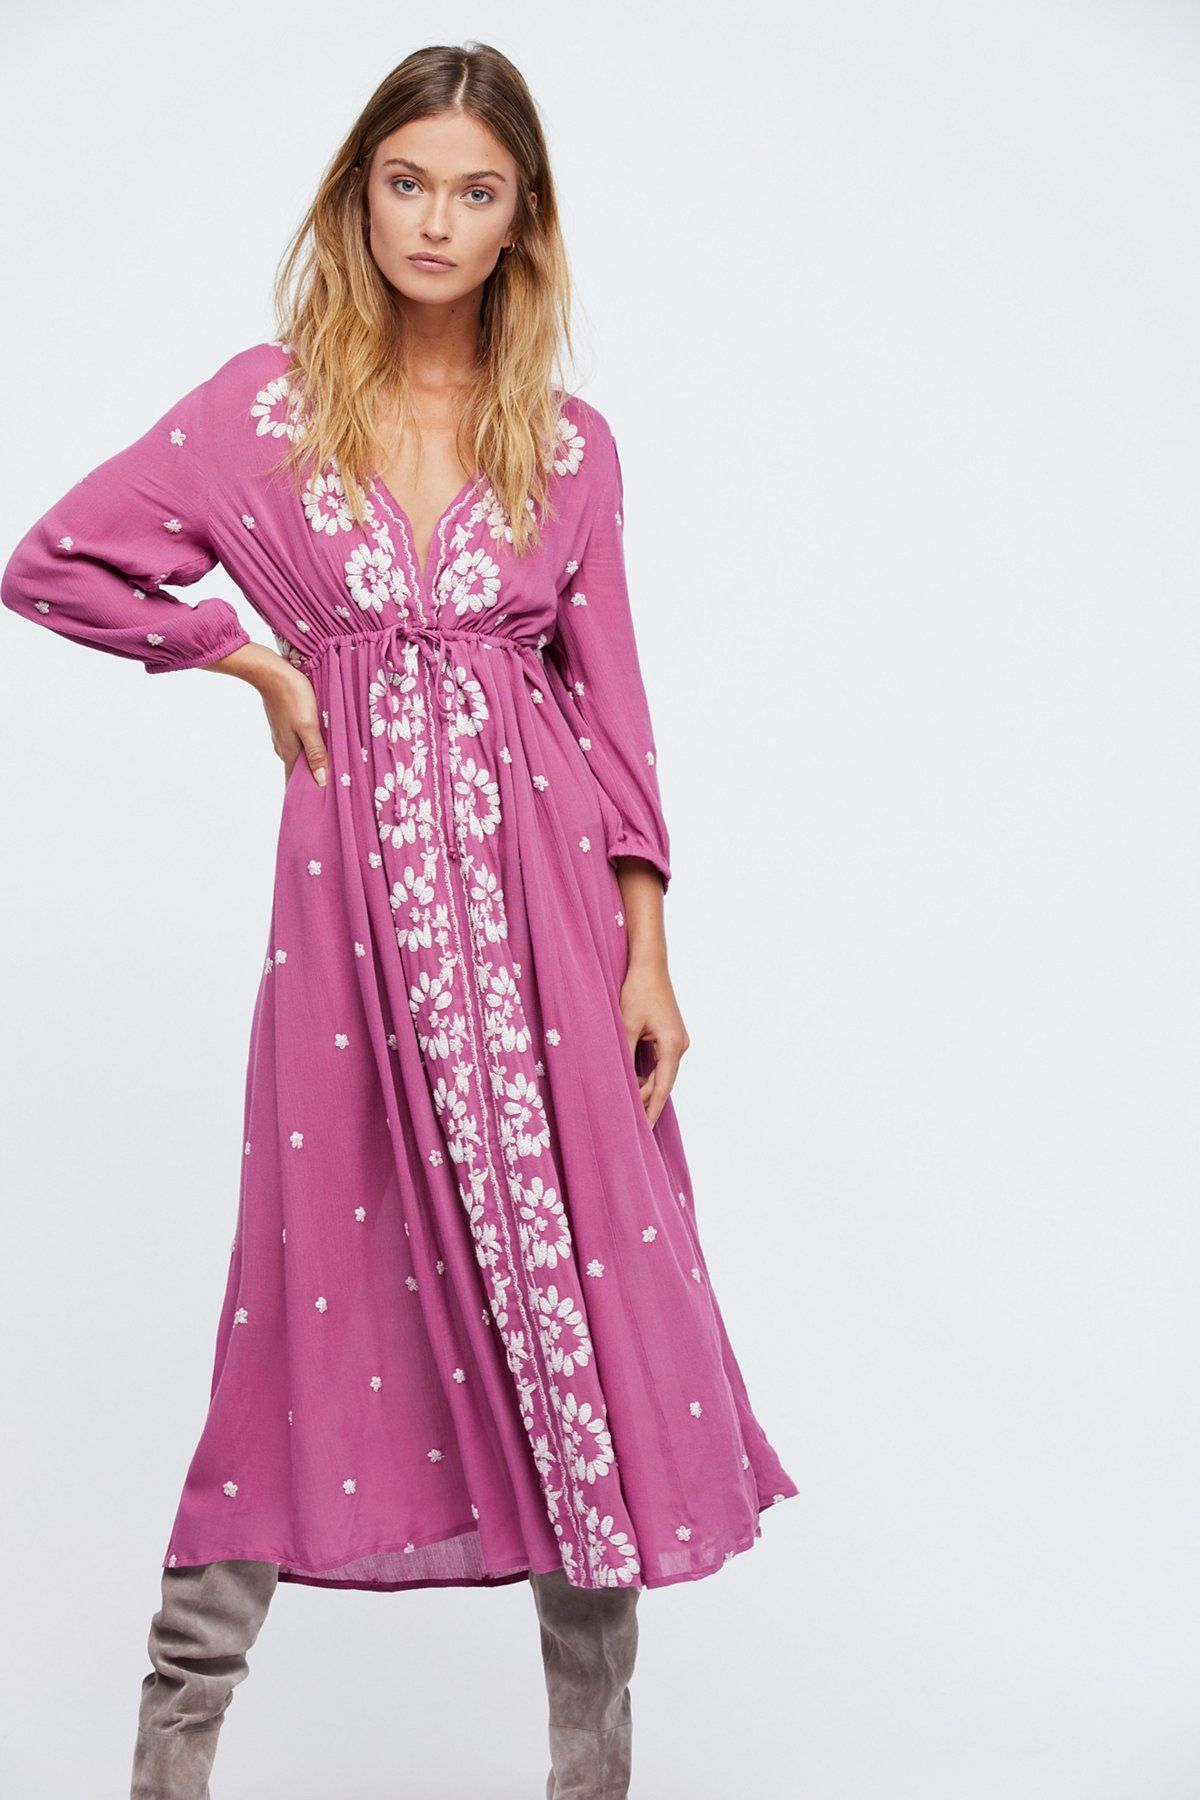 Embroidered Fable Dress | Dresses | Pinterest | Ropa